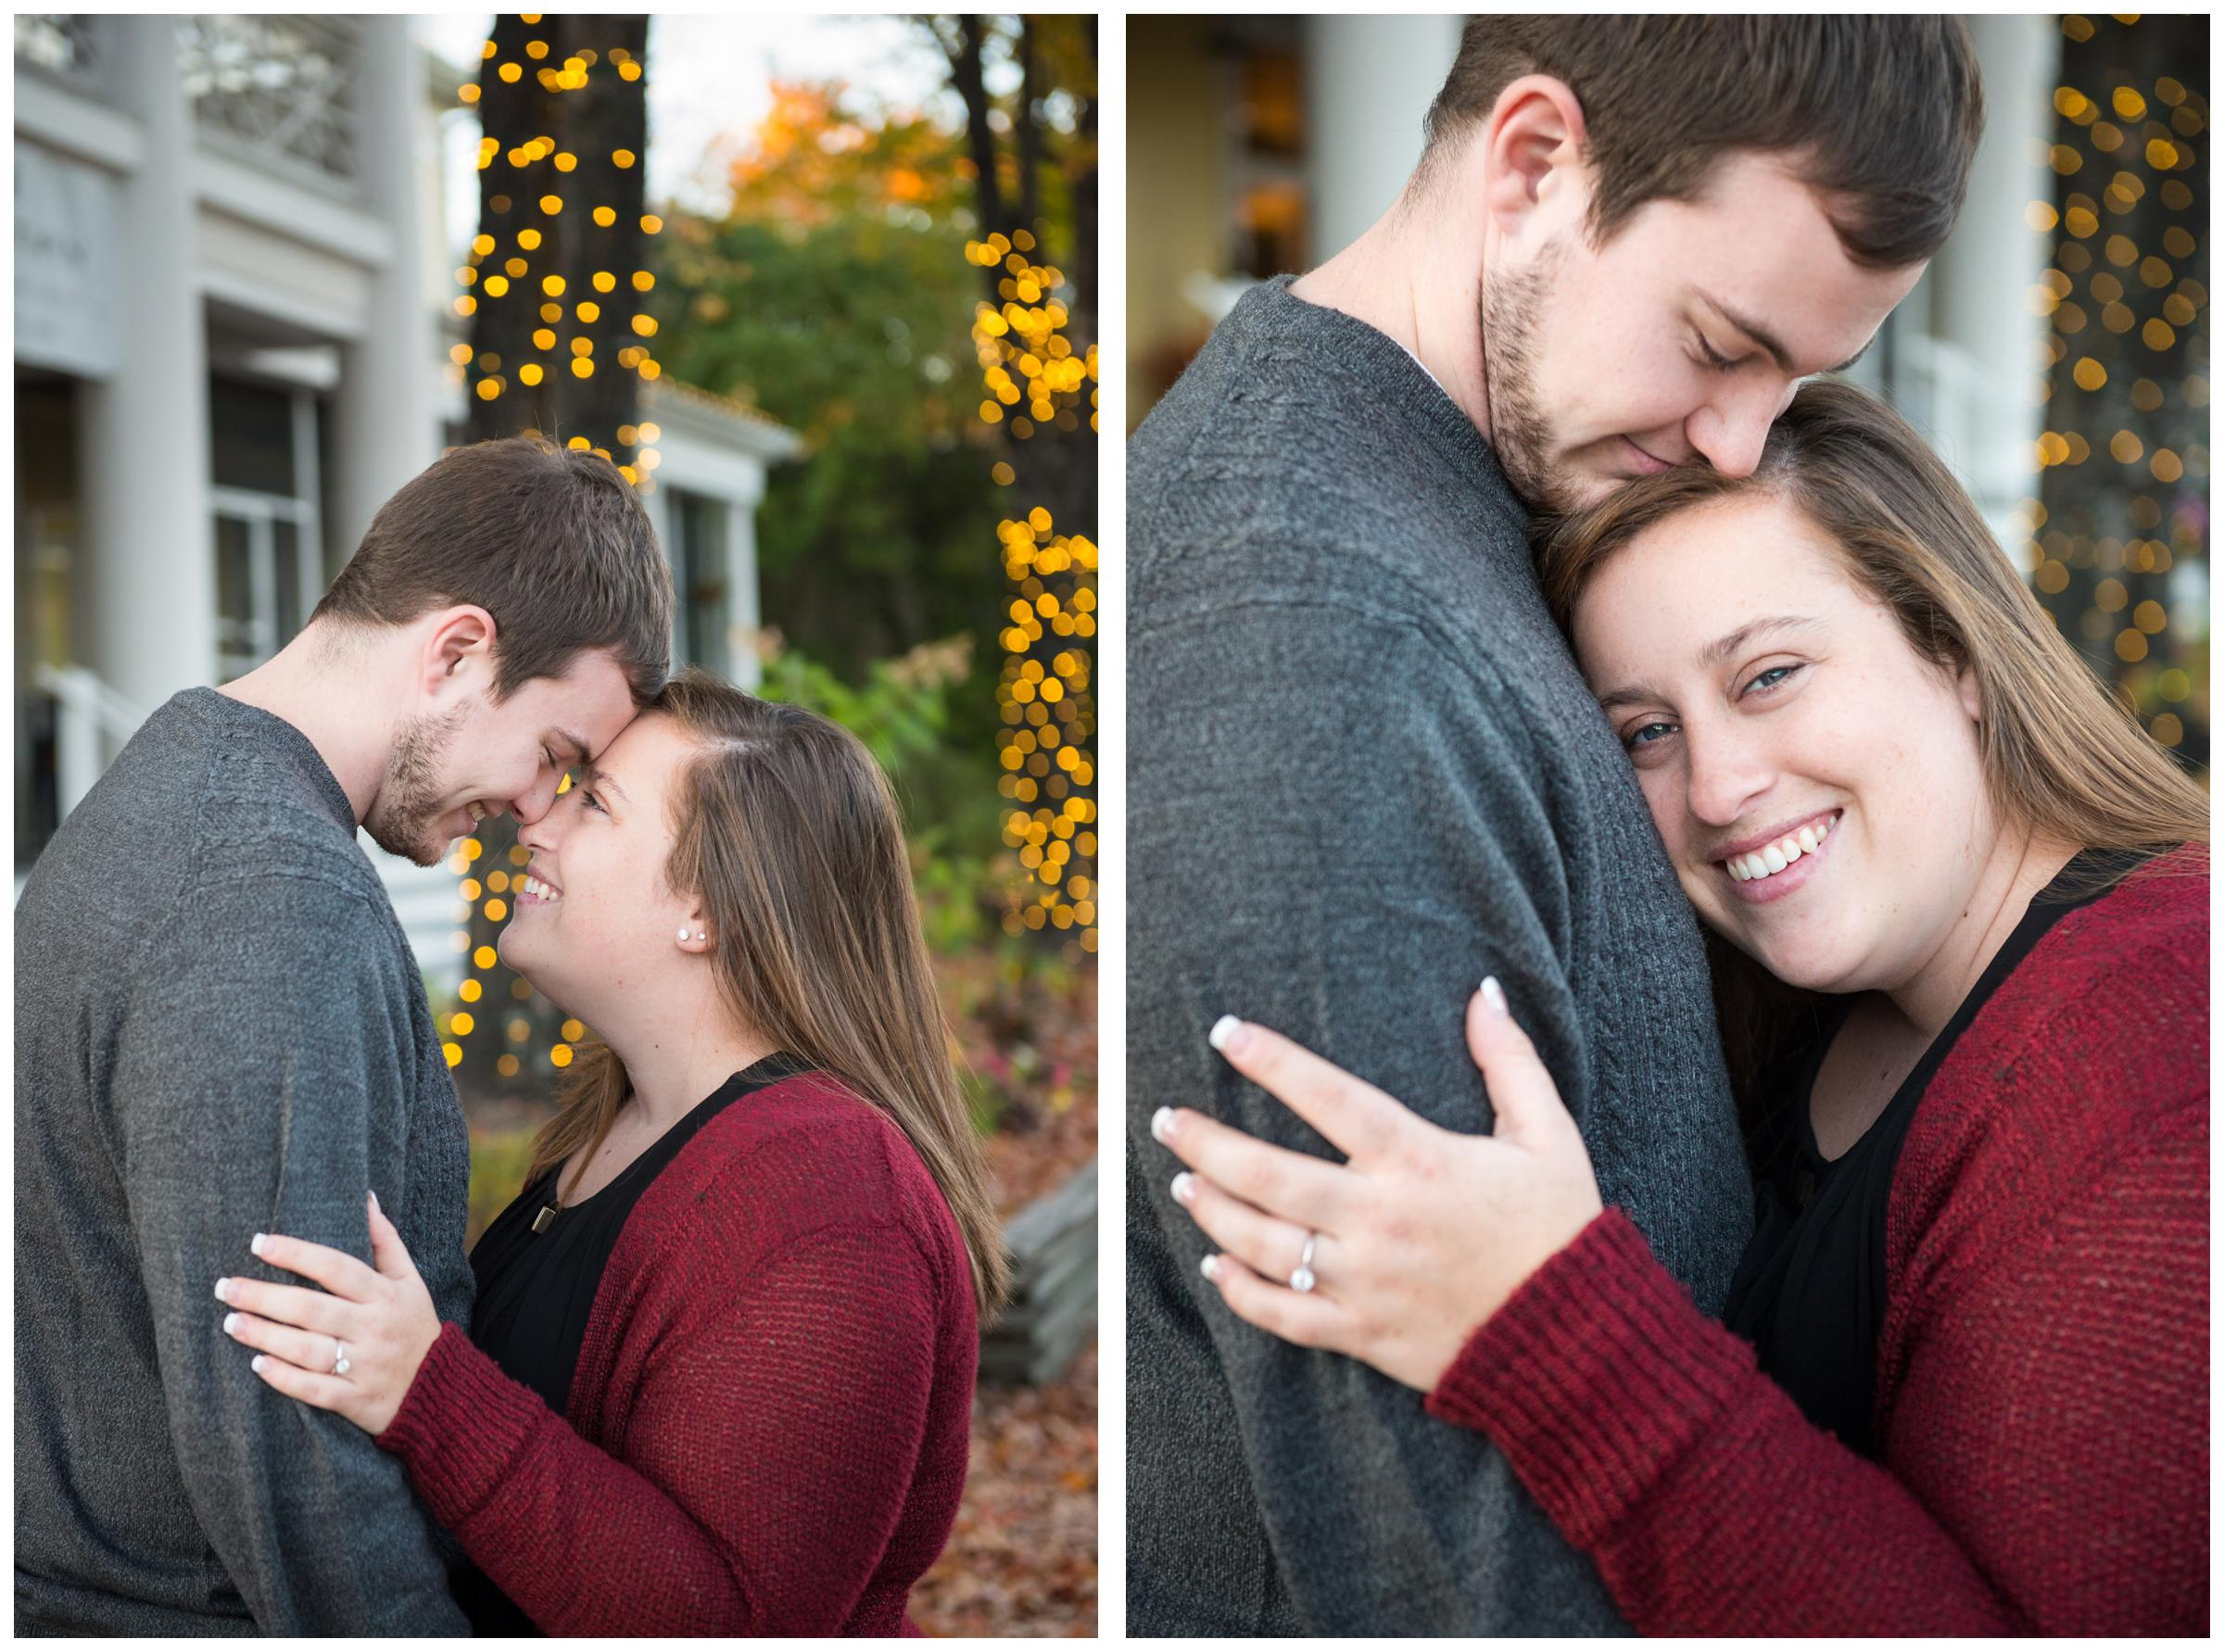 Engagement photos in historic downtown Ashland, Virginia.